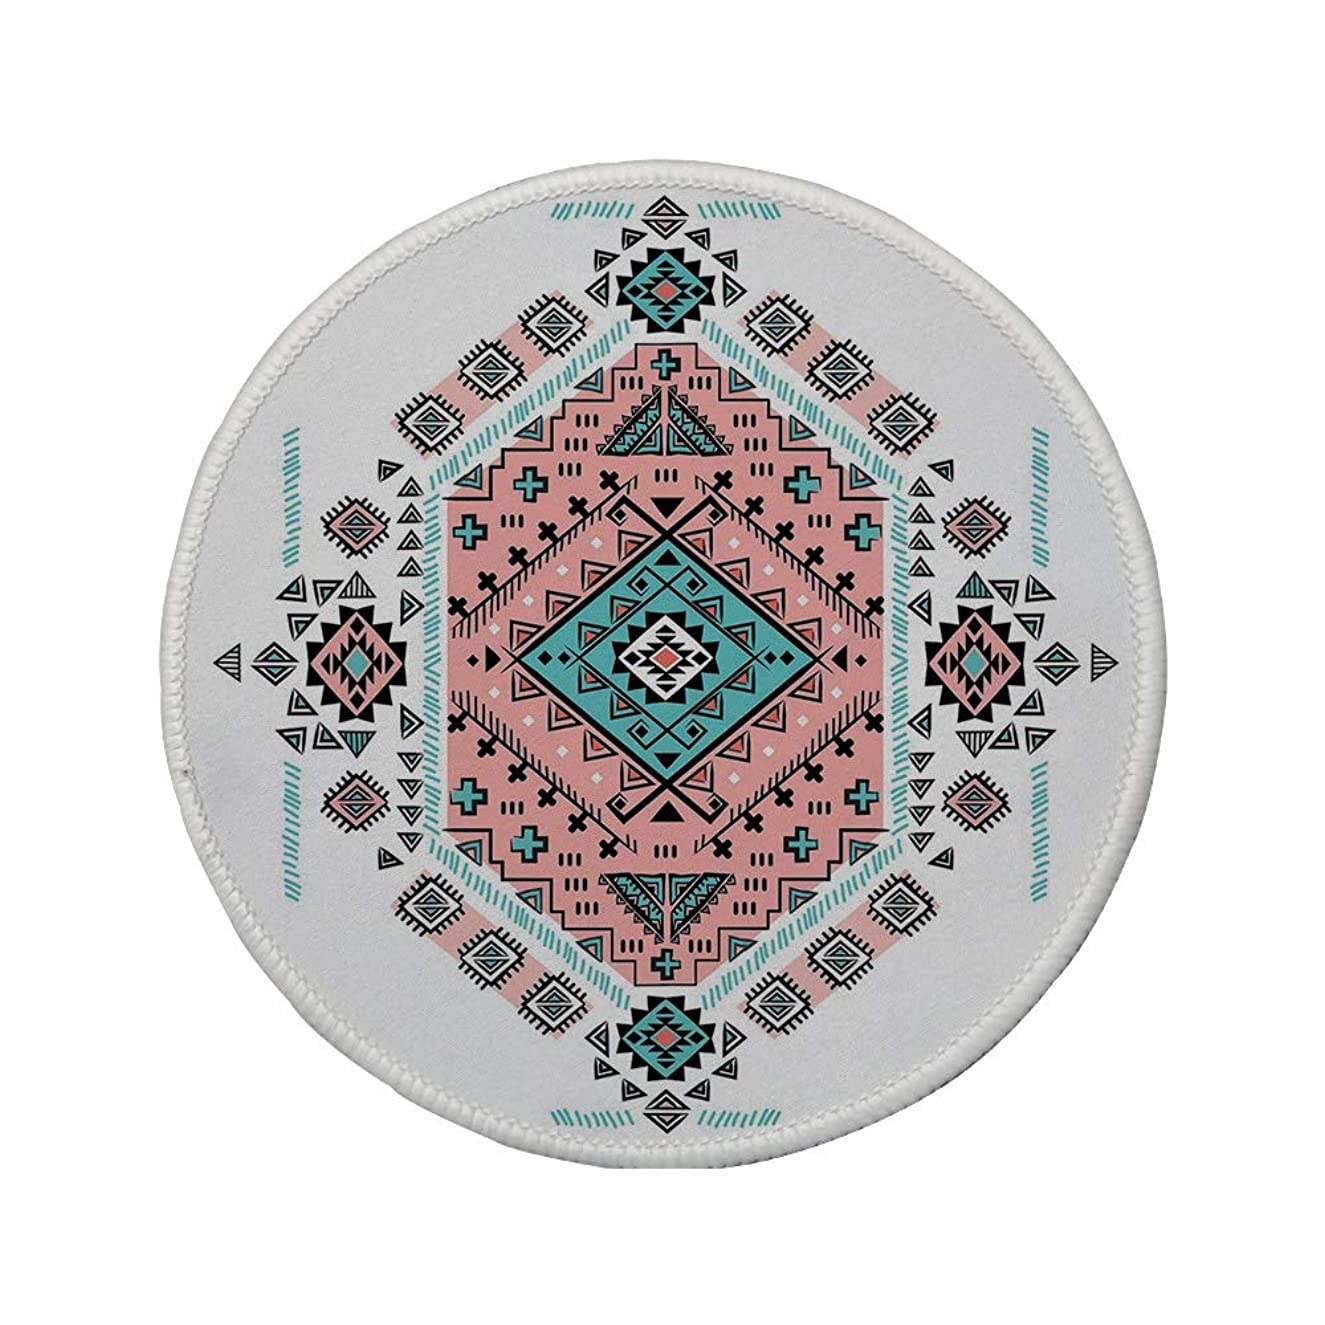 Non-Slip Rubber Round Mouse Pad,Tribal Decor,Mexican Native American Ethnic Symmetrical Four Corner Art Pattern,Teal and Coral Pink,7.87